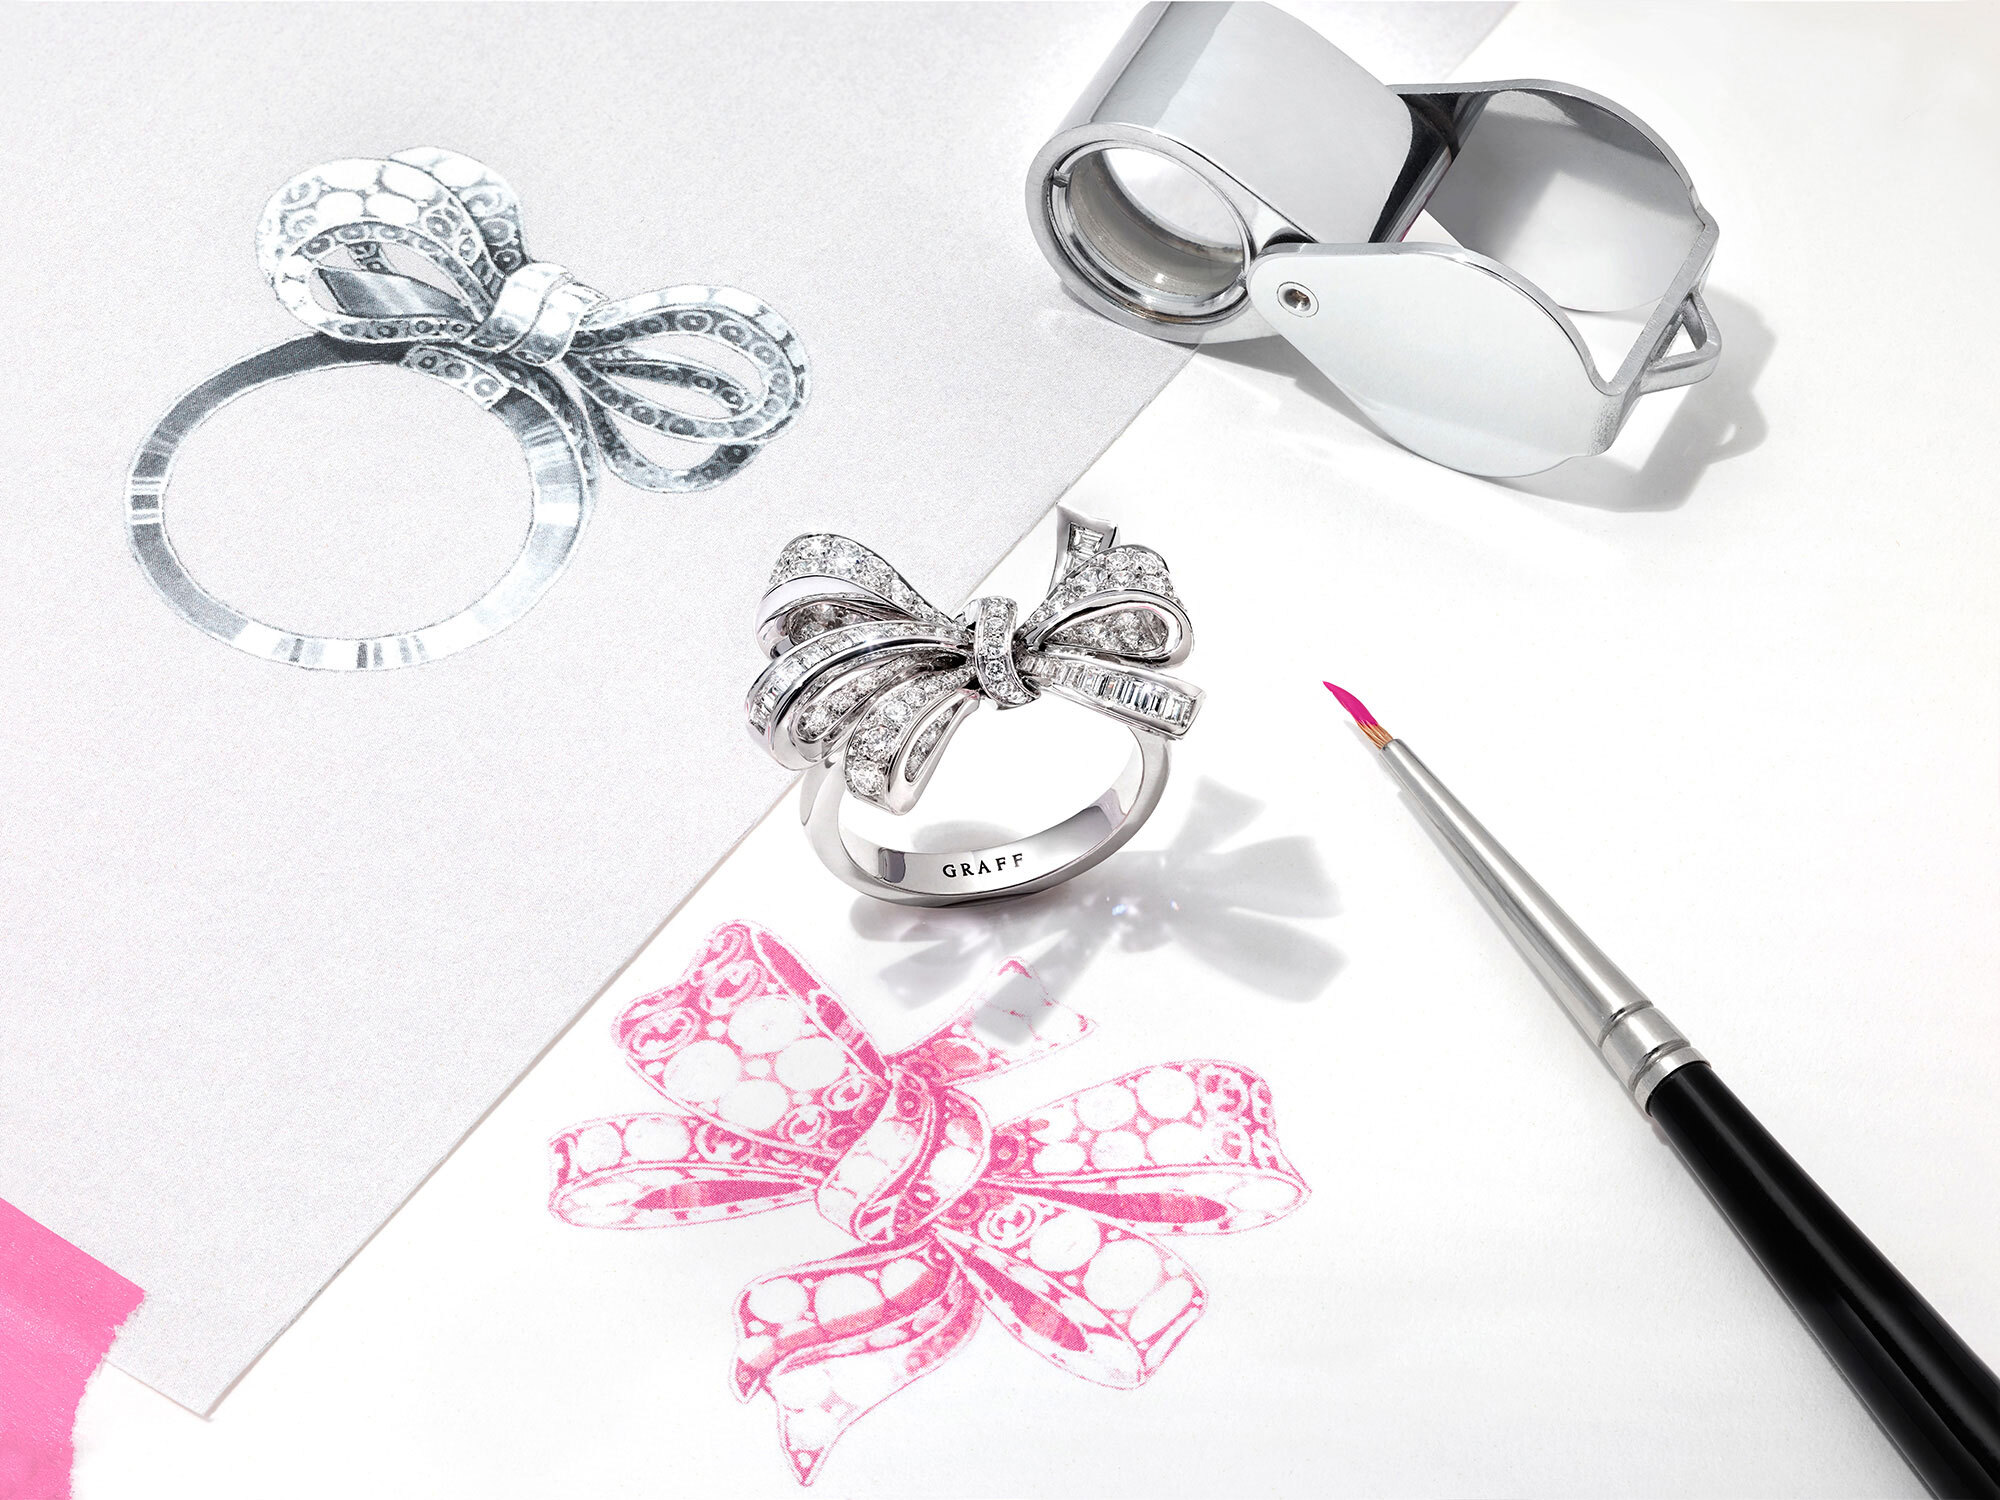 A Graff Tilda's Bow jewellery collection diamond ring with sketches of the design